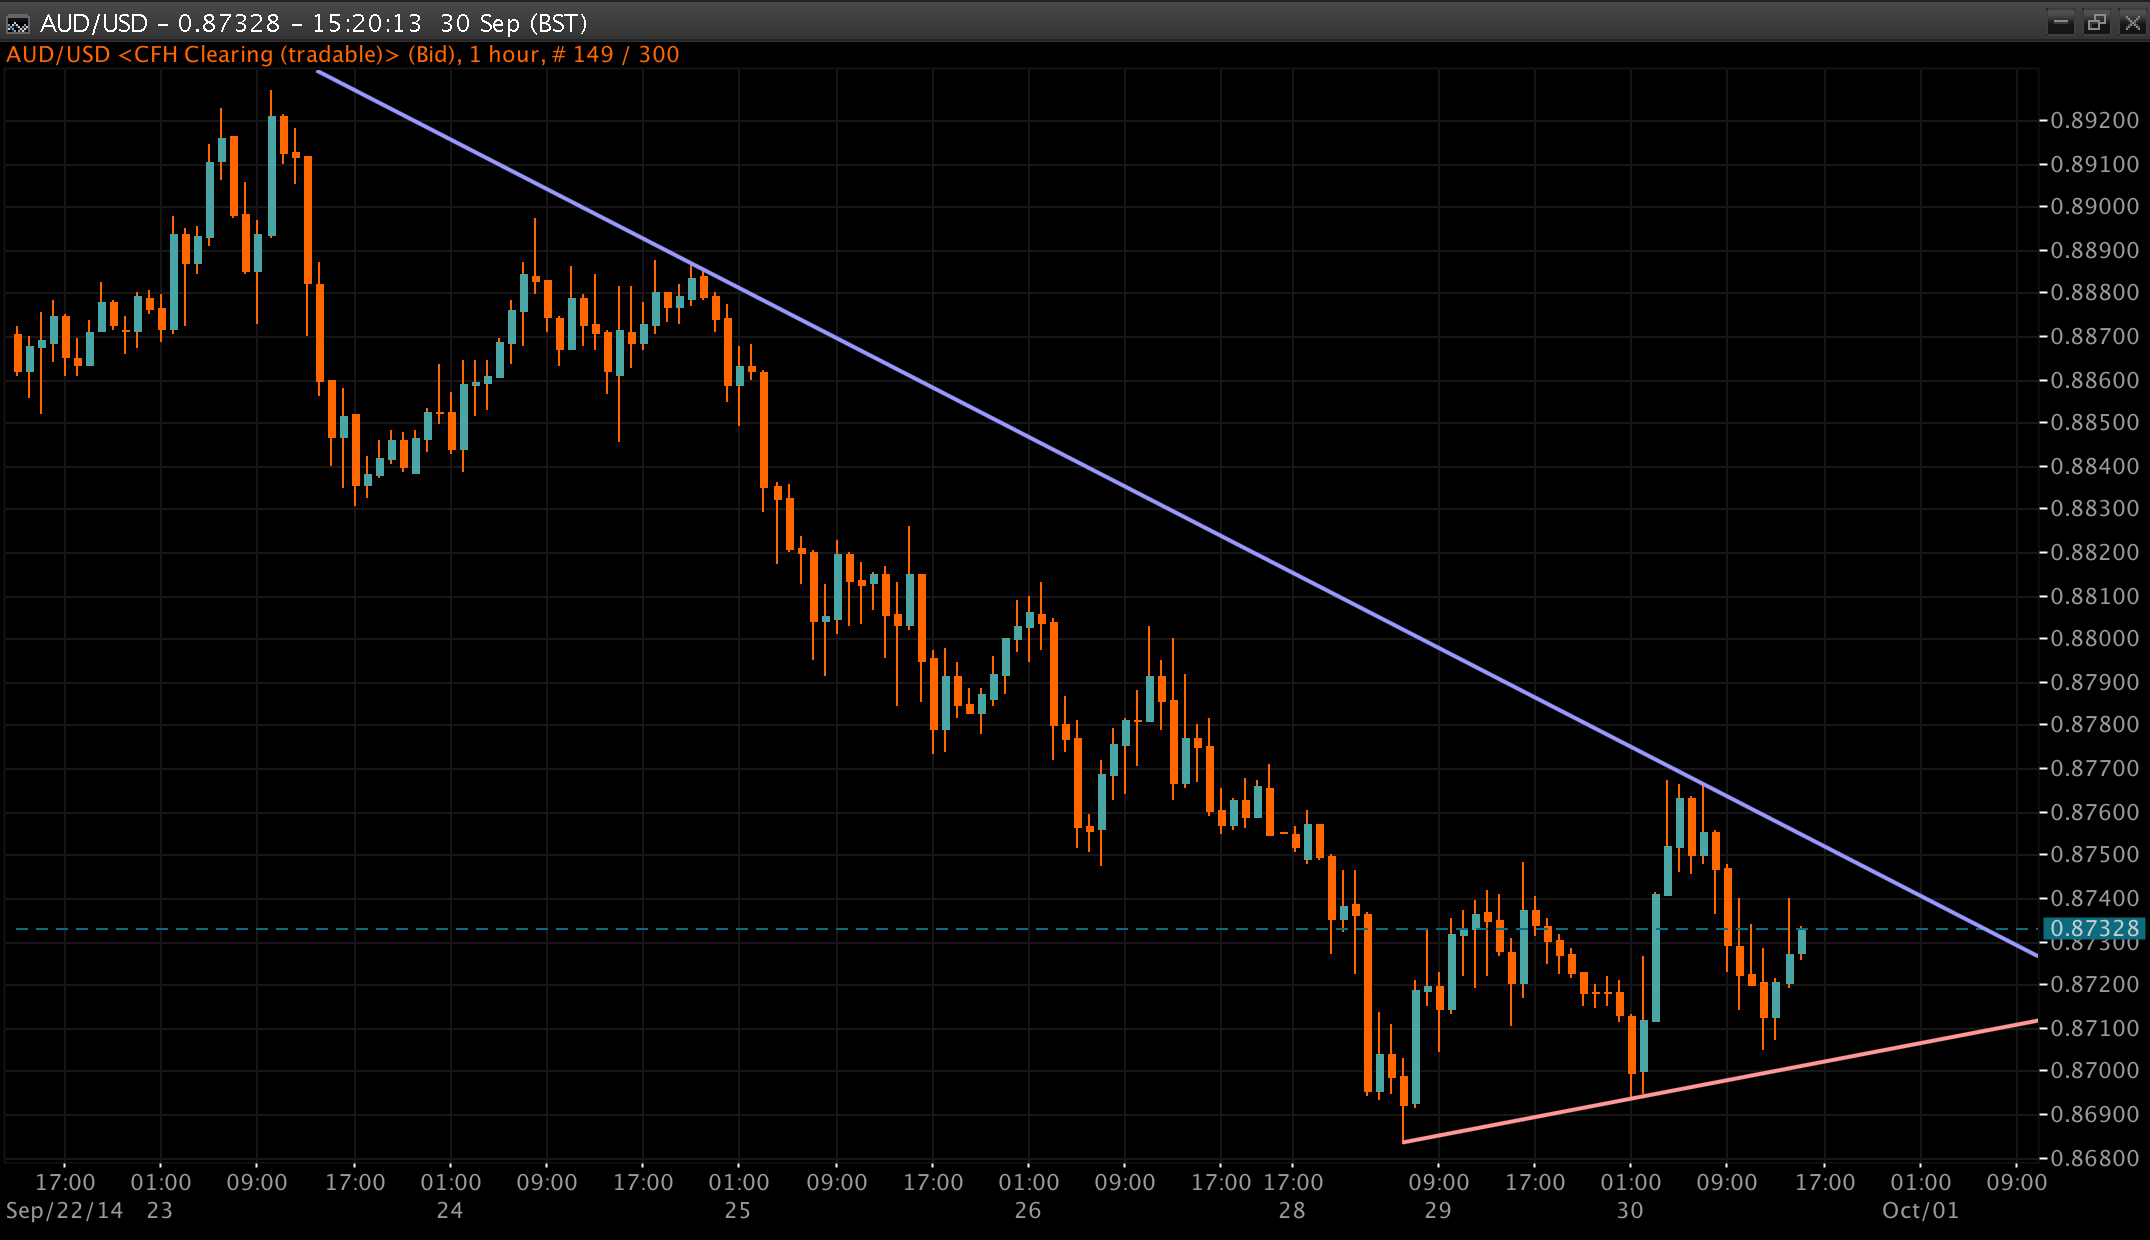 AUD/USD Chart 30 Sep 2014